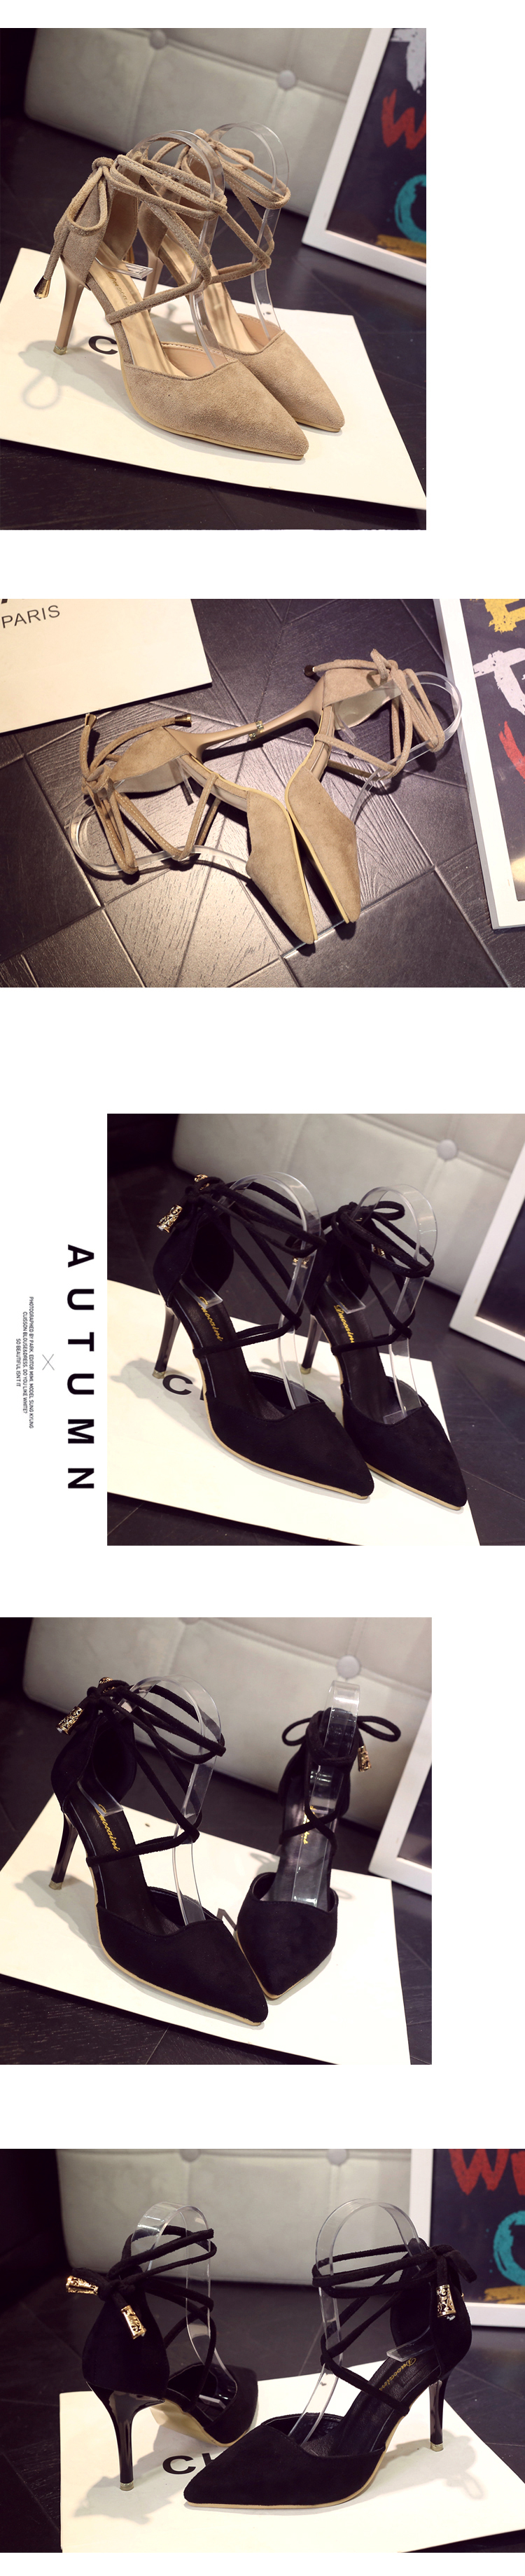 High Quality Brand Pointed Toe Women Pumps Summer Fashion High Heels Shoes Back Strap Thin Heels Pumps Solid Shoes 19